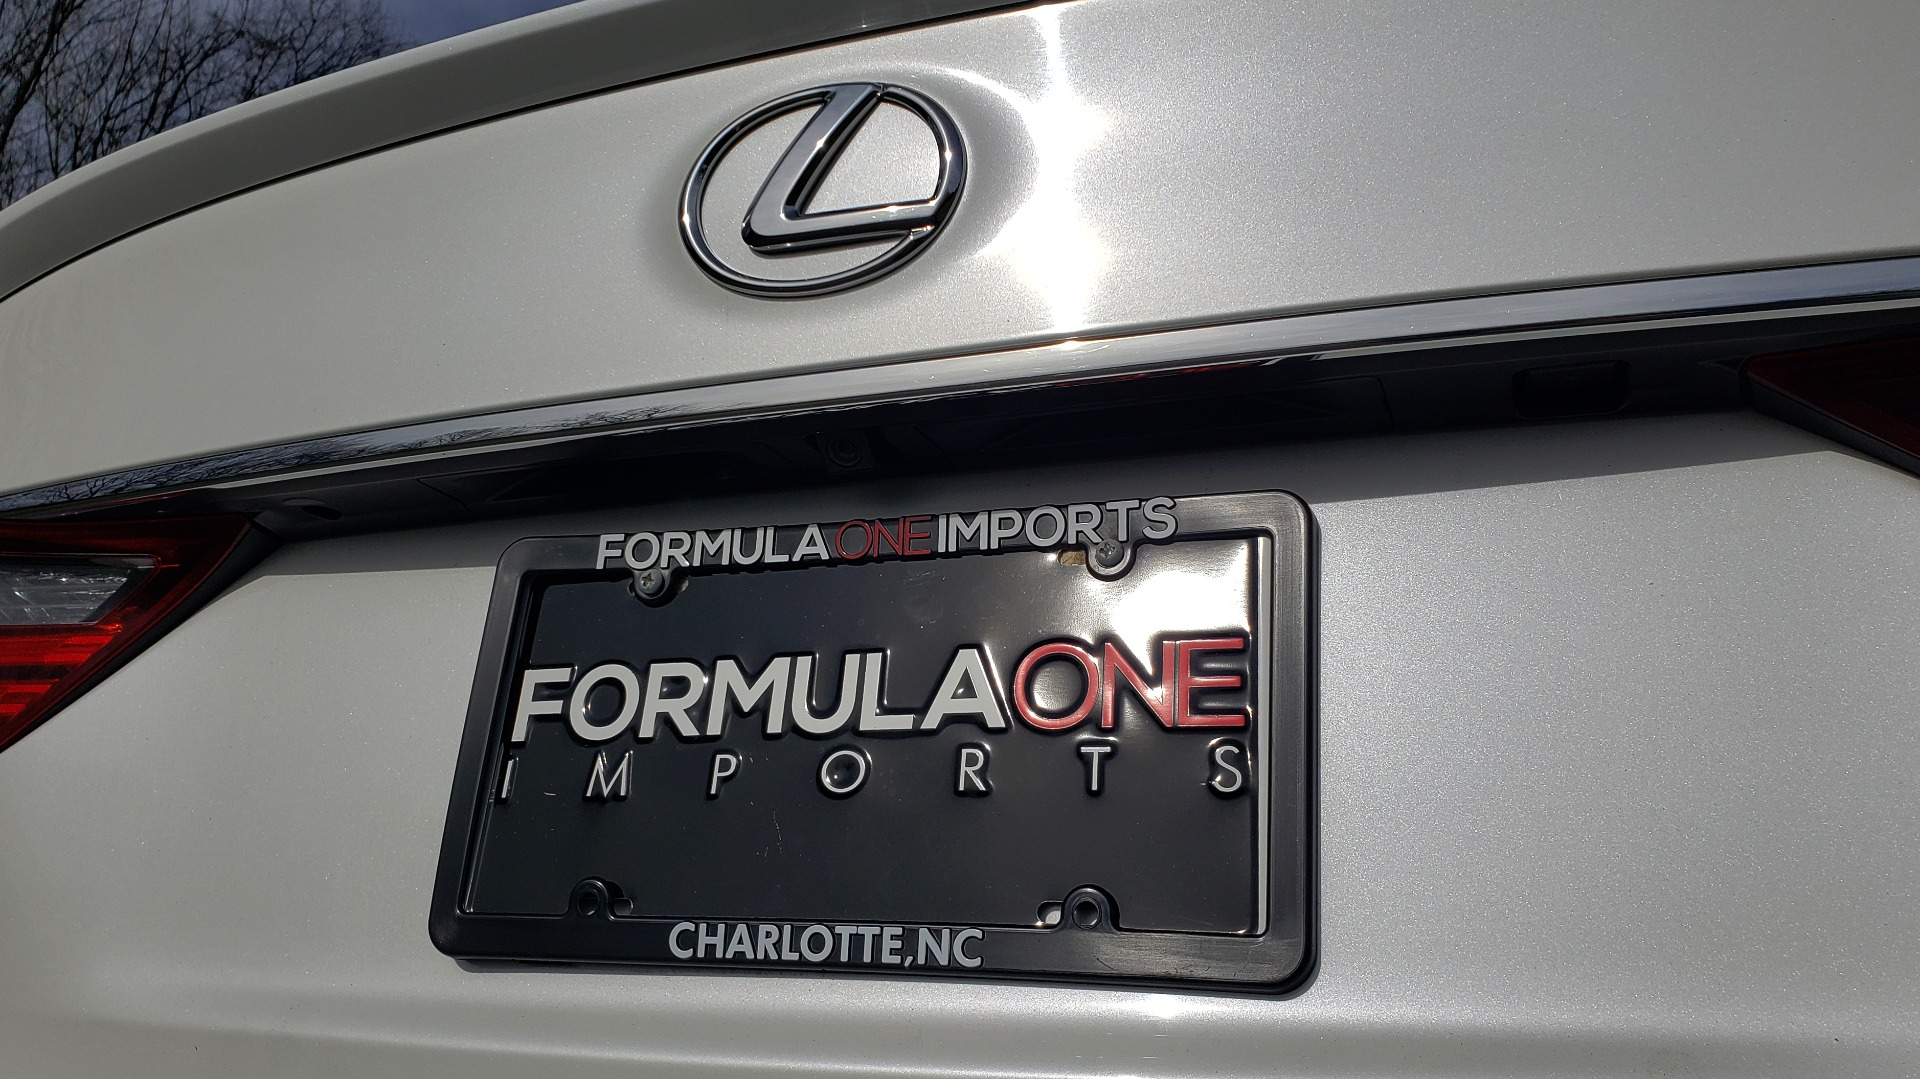 Used 2013 Lexus GS 350 F-SPORT / NAV / SUNROOF / BSM / PRK ASST / REARVIEW for sale Sold at Formula Imports in Charlotte NC 28227 25